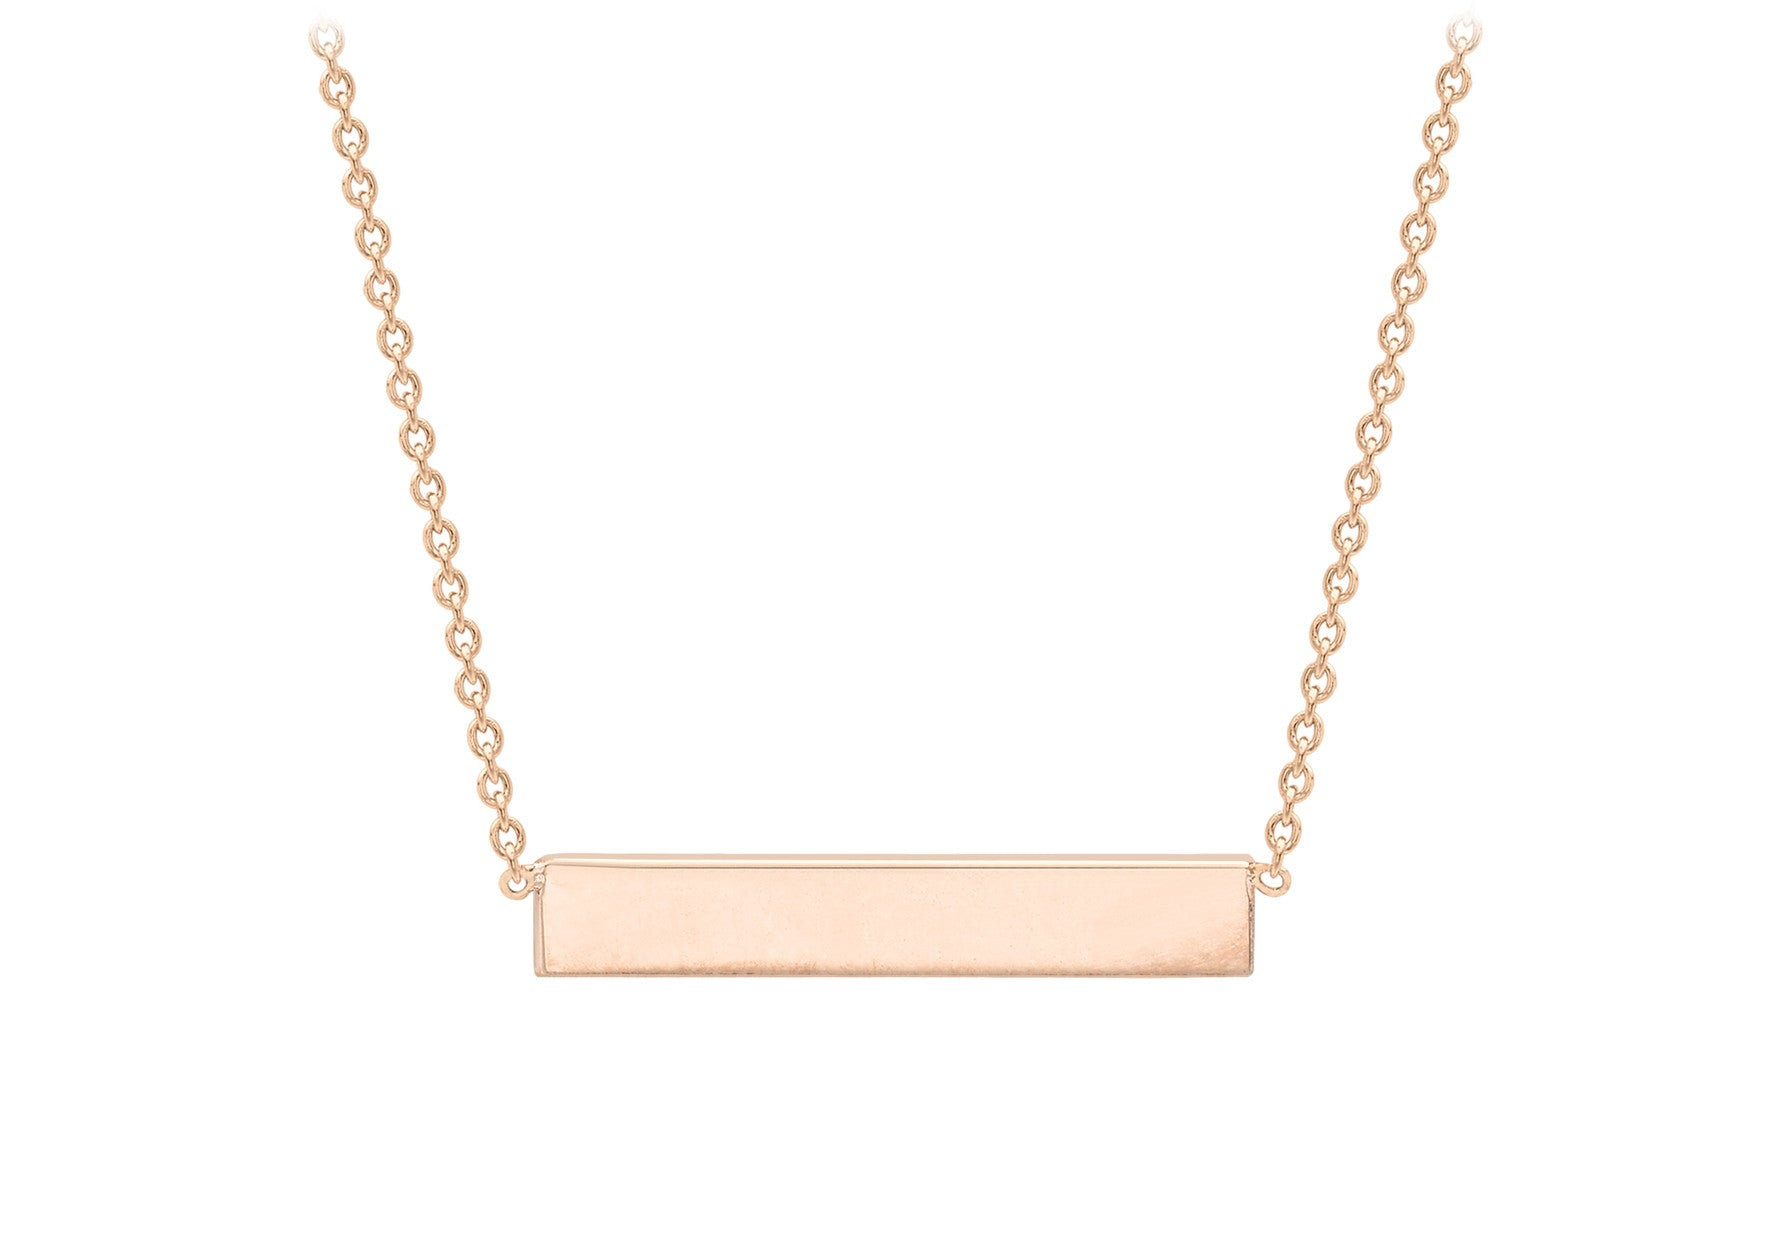 42cb601595c Buy 9ct Rose Gold Bar Necklace at Tzefira for only £120.00